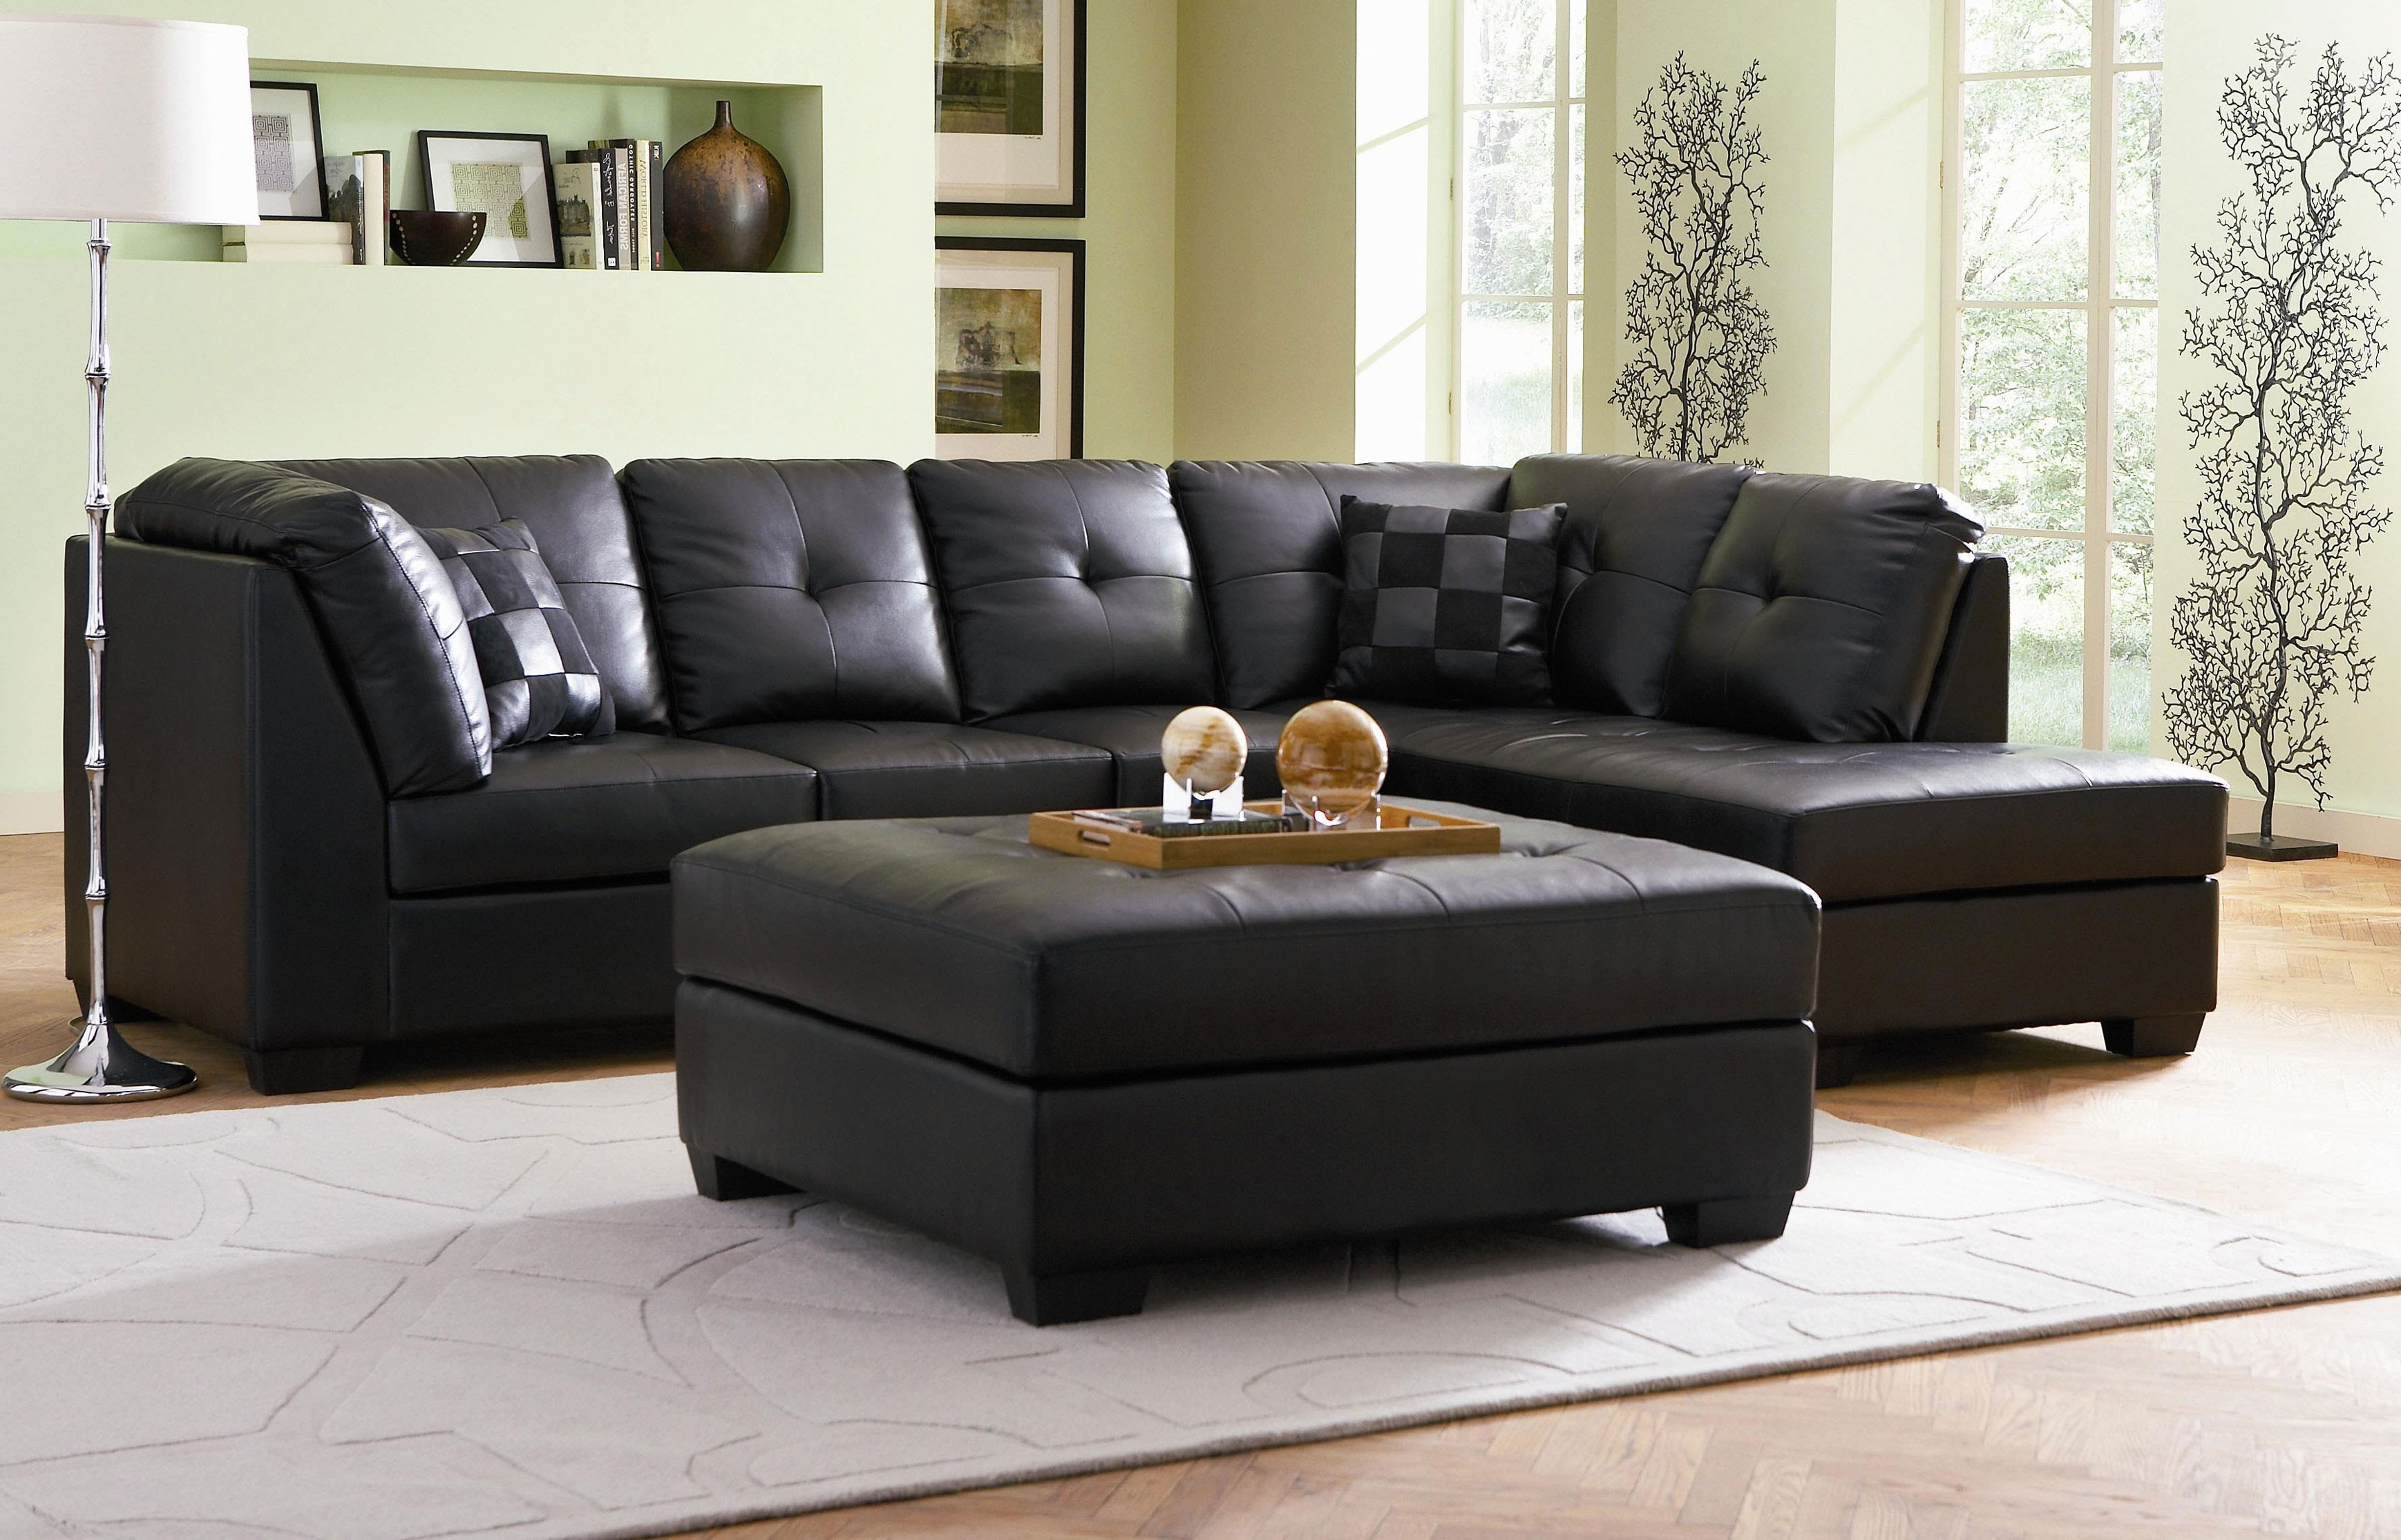 Trendy Murfreesboro Tn Sectional Sofas Throughout Sectional Sofa: Top Recommended Inexpensive Sectional Sofa Best (View 12 of 15)